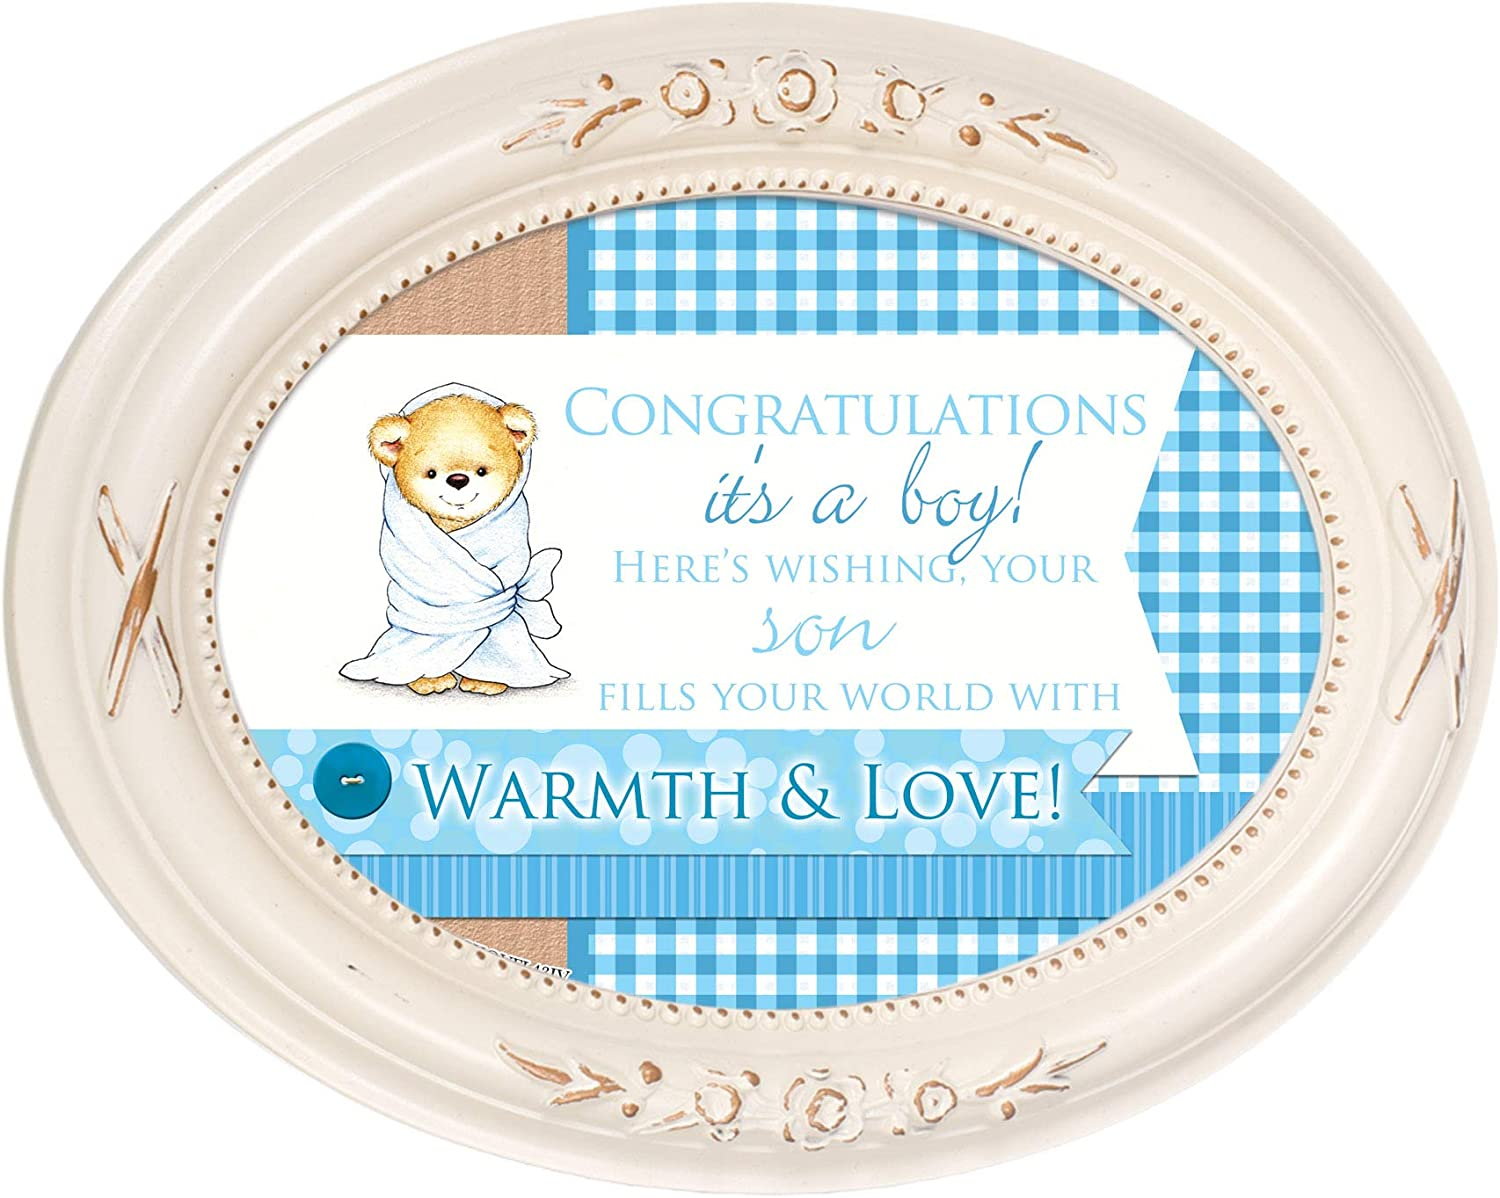 Cottage Garden Congratulations It's A Boy Distressed Ivory Floral 5 x 7 Oval Table and Wall Photo Frame